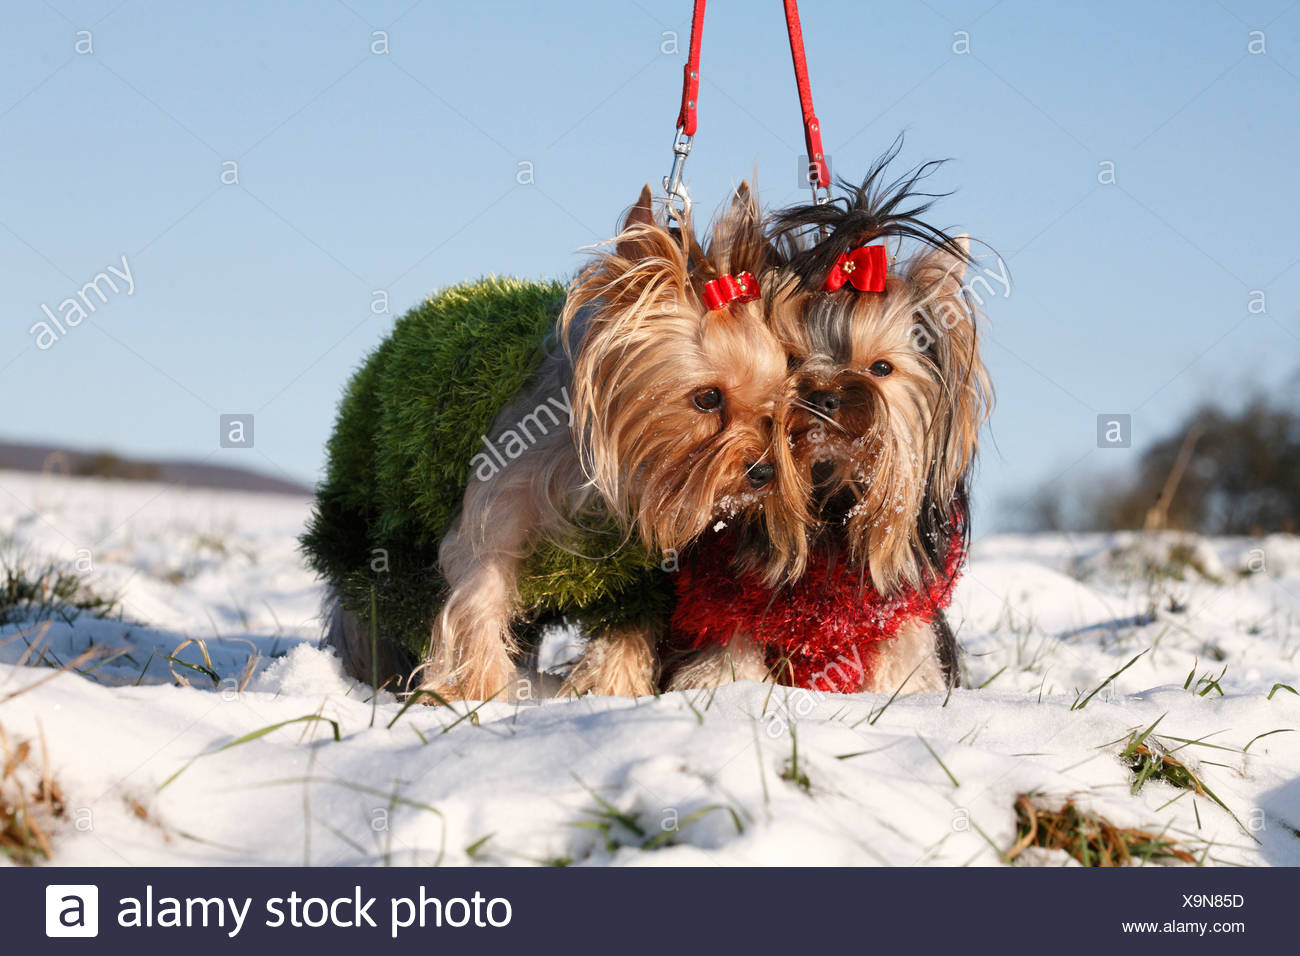 Yorkshire Terrier (Canis lupus f. familiaris), two leashed dogs standing in a snow-covered meadow with with knitted pullovers a Stock Photo